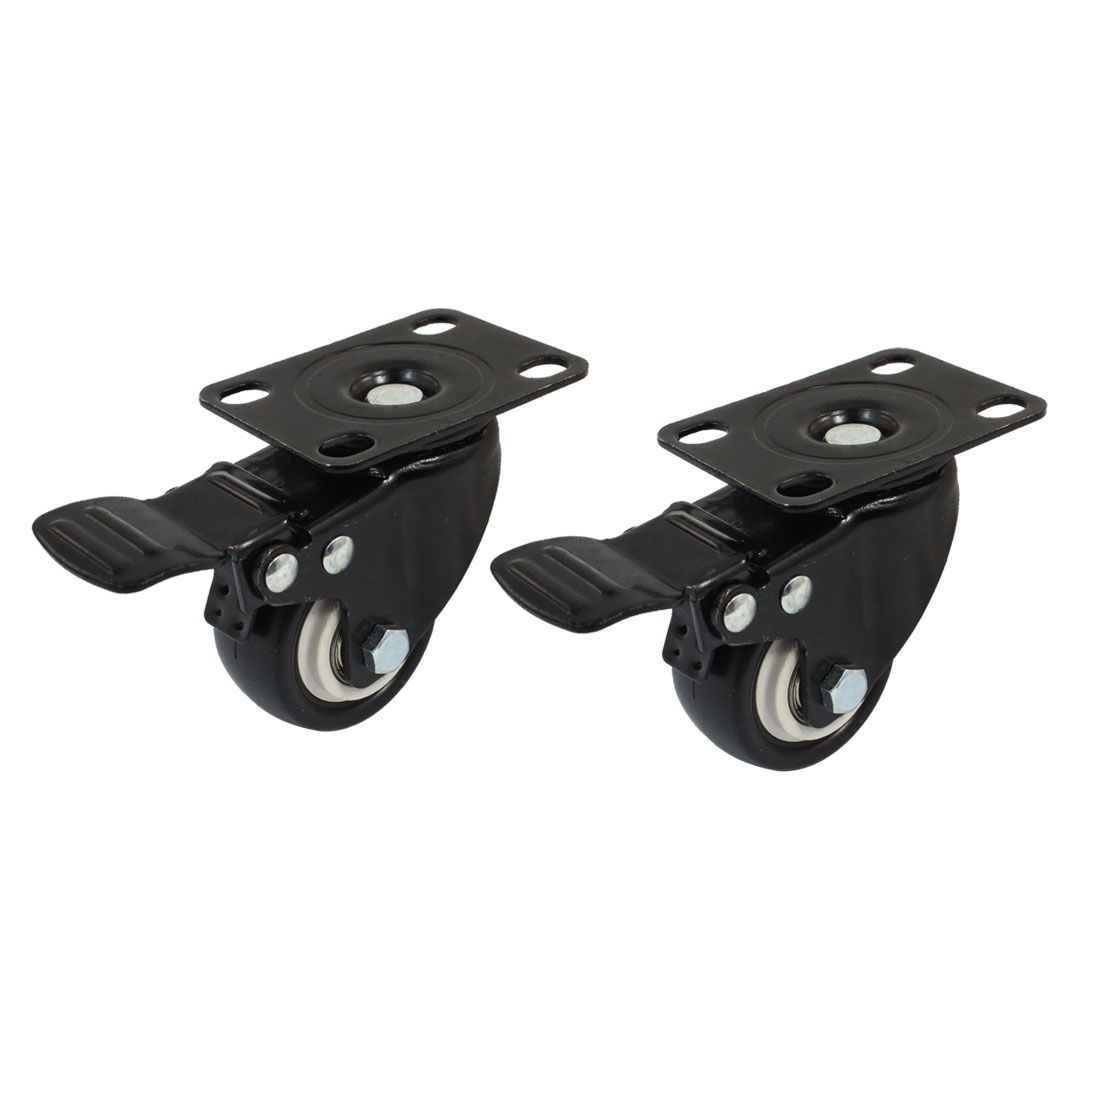 "Furniture Trolley 2"" Round Single Wheel Rectangle Top Plate 360 Degree Rotation Swivel Brake Lock Caster 2pcs"